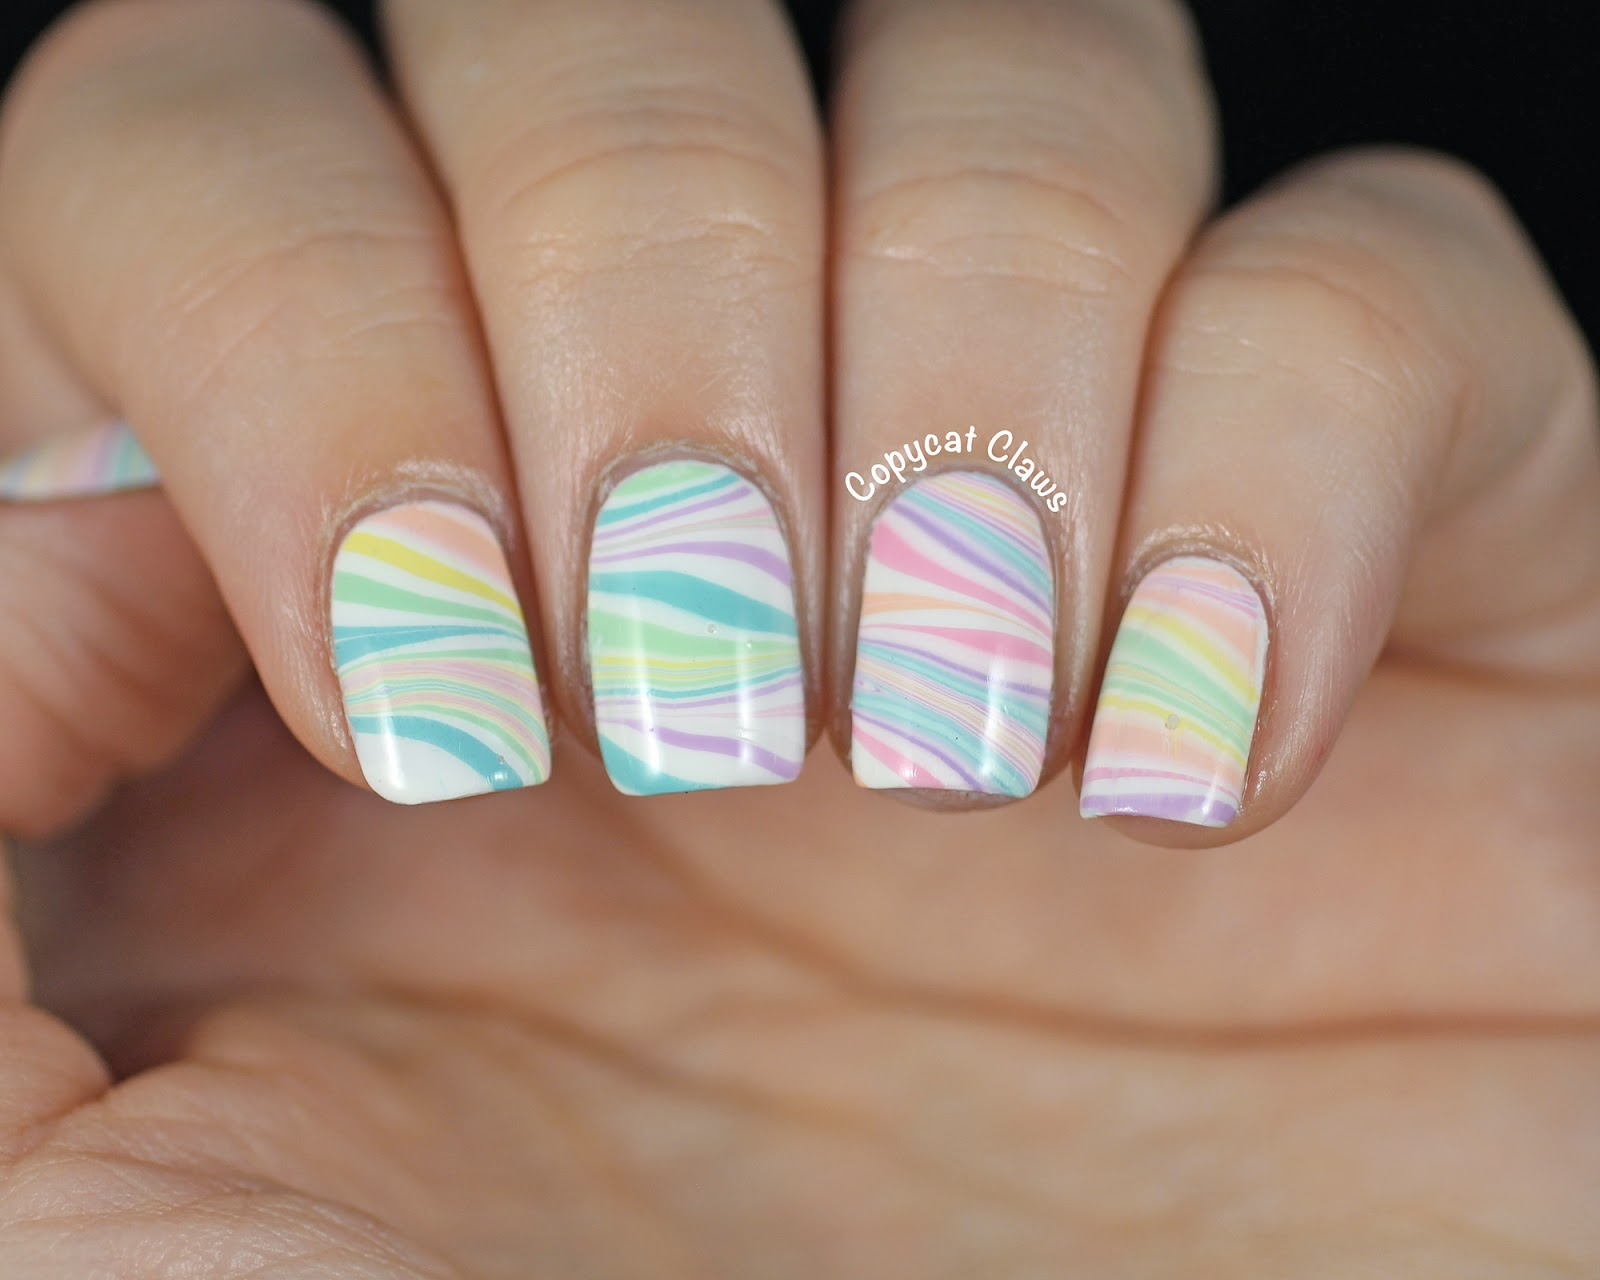 Copycat Claws Springtime Water Marble Nail Art